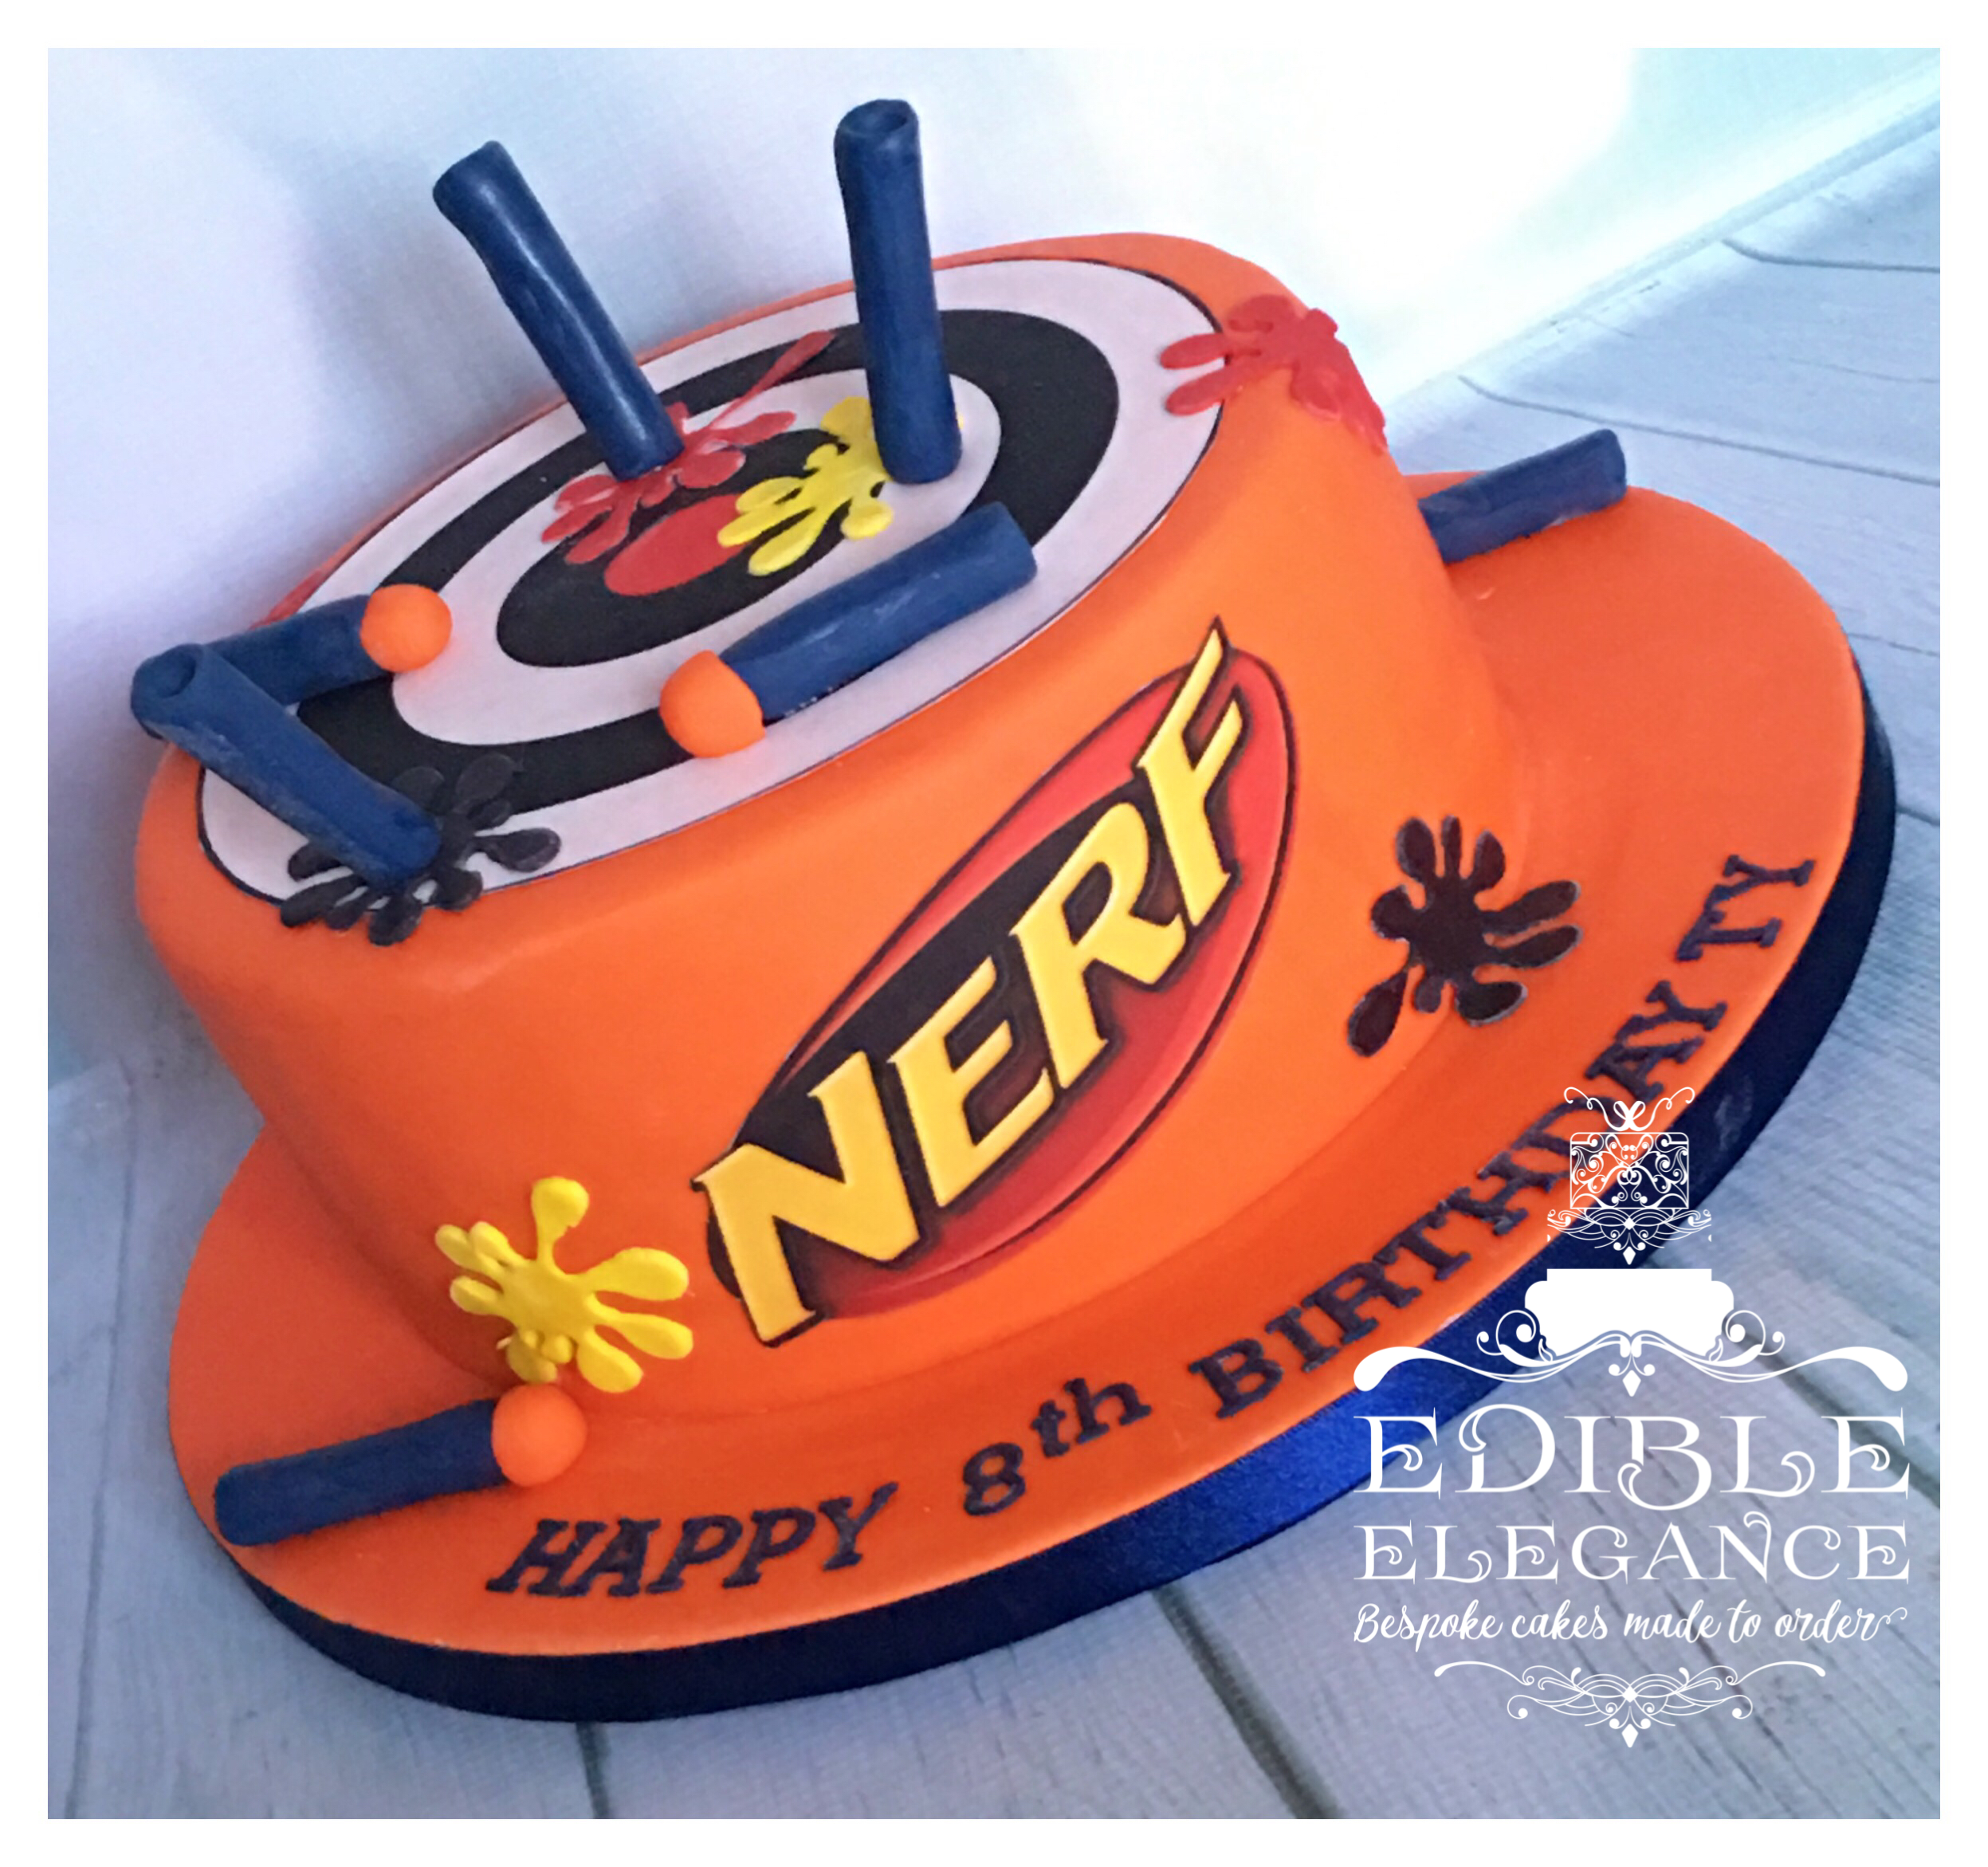 Nerf Target Cake, Gorgeous Bright Colours! Everything